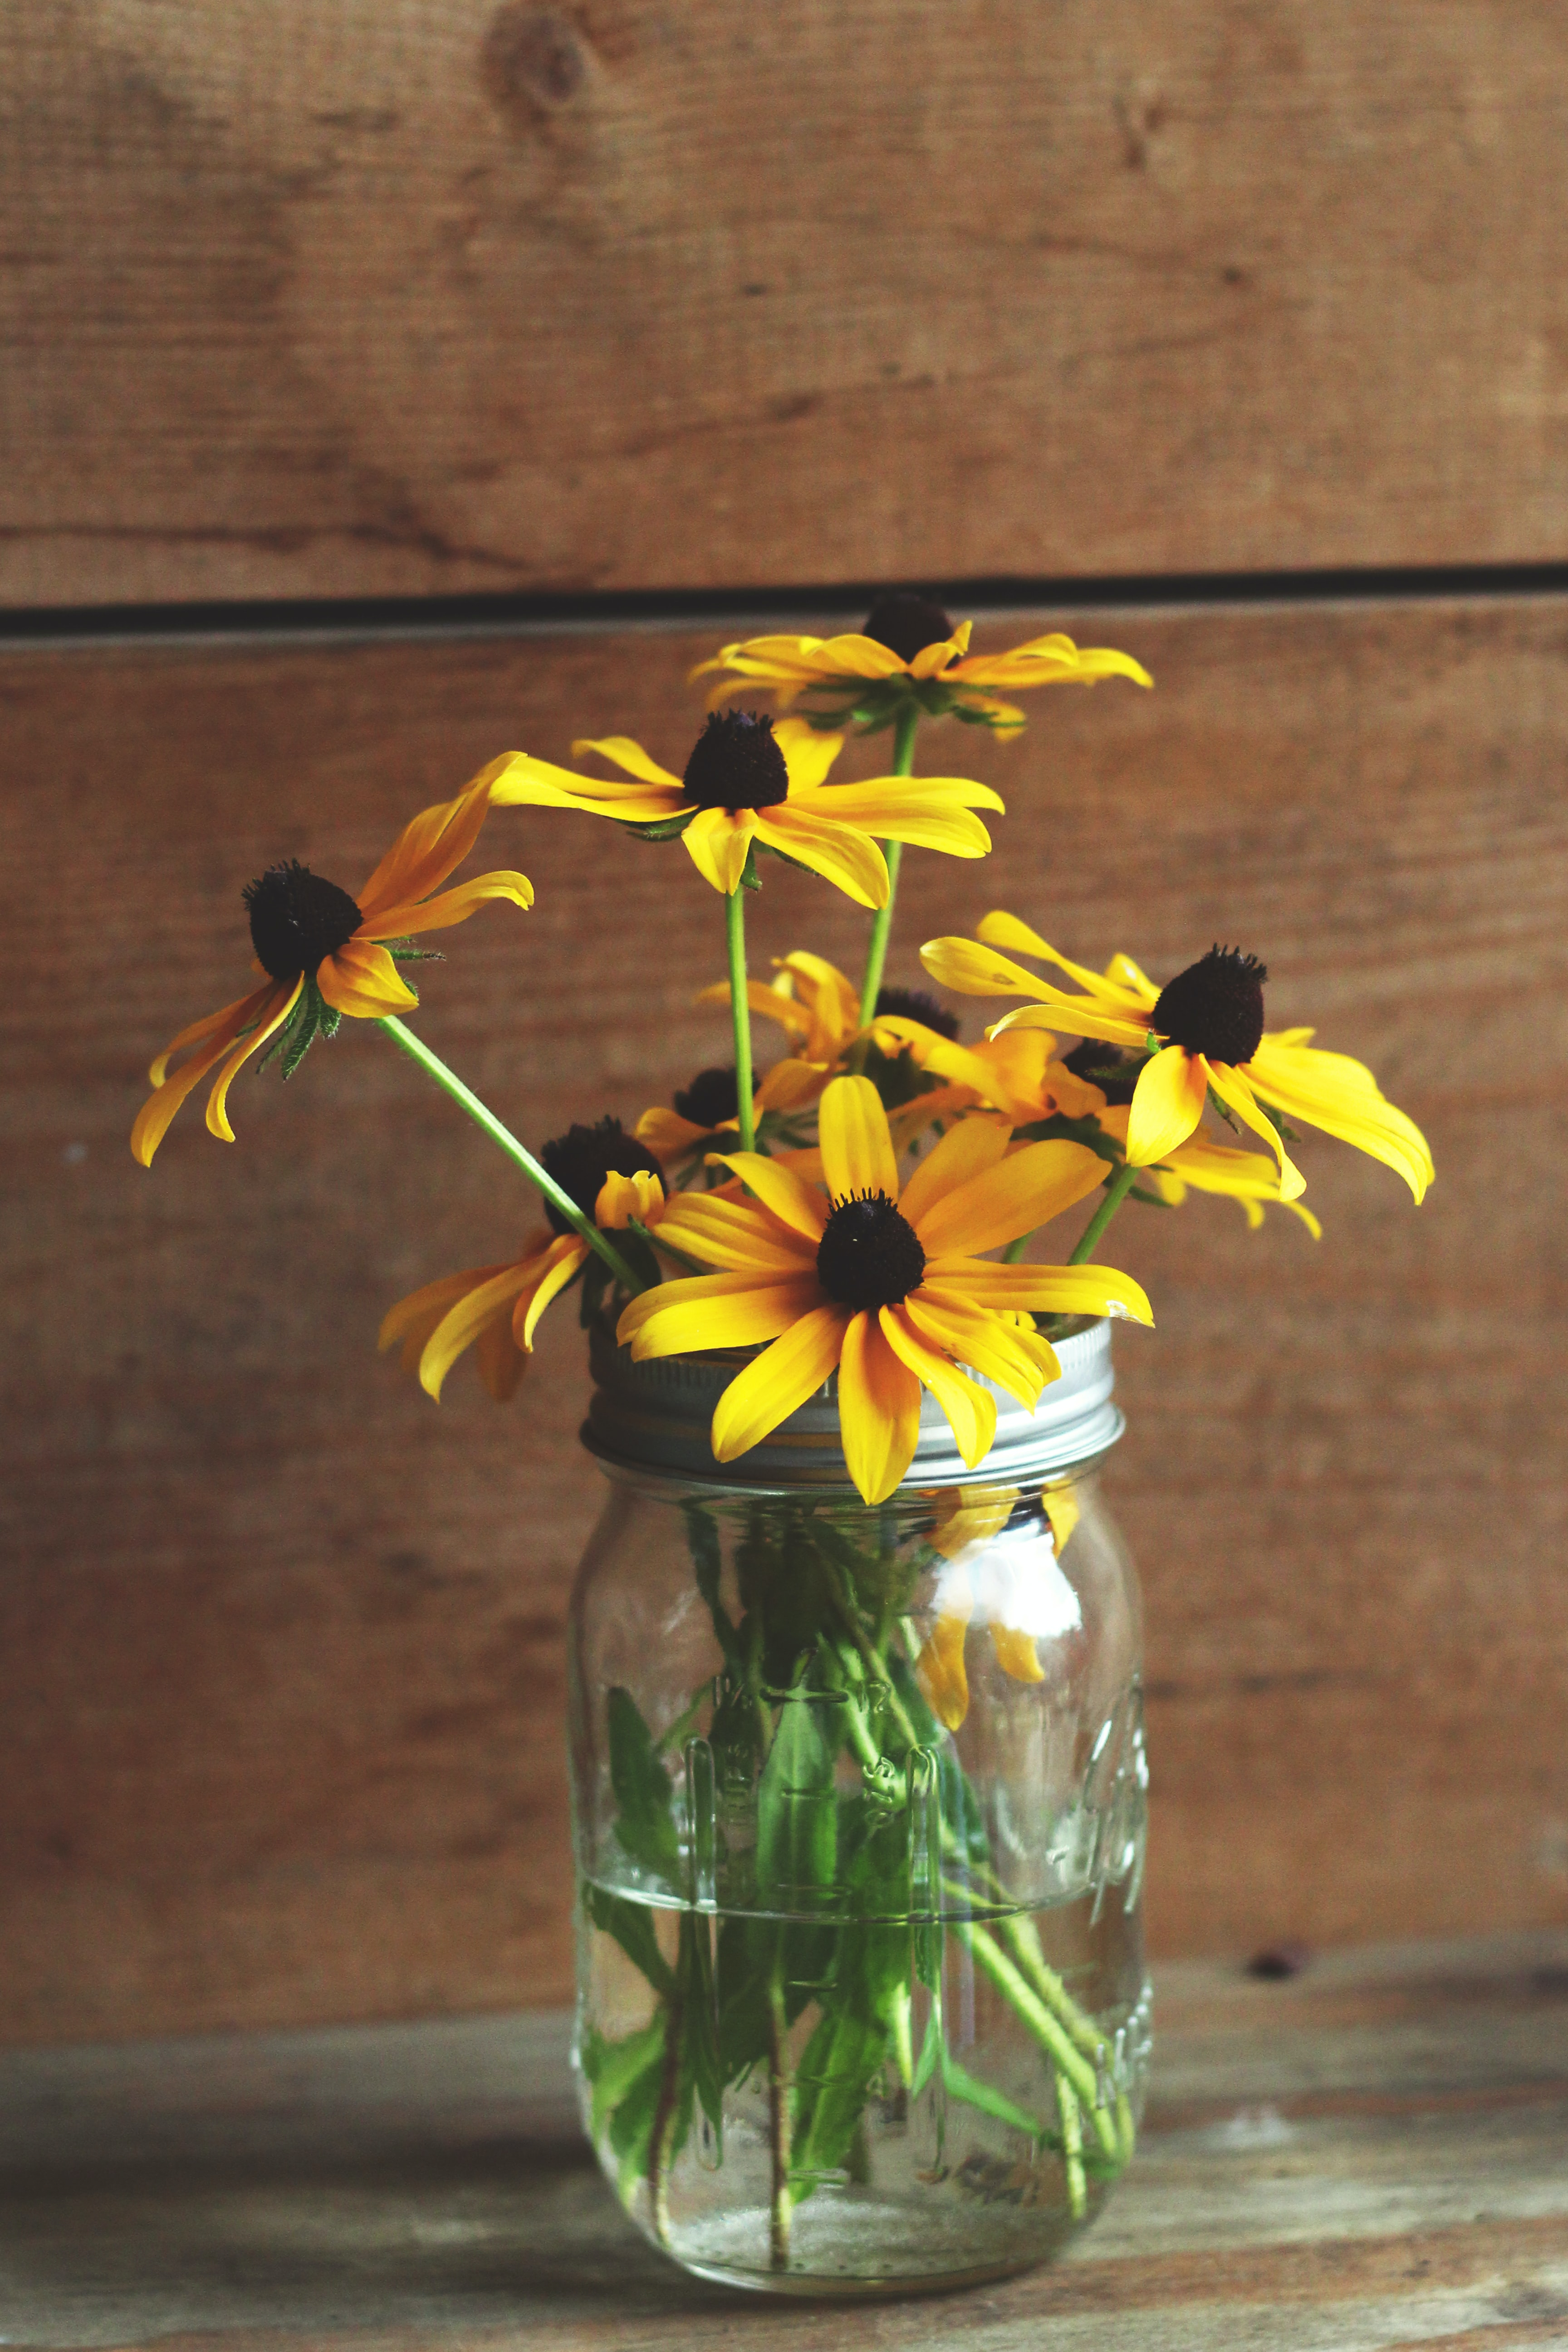 Yellow black-eyed Susan flowers in a glass jar